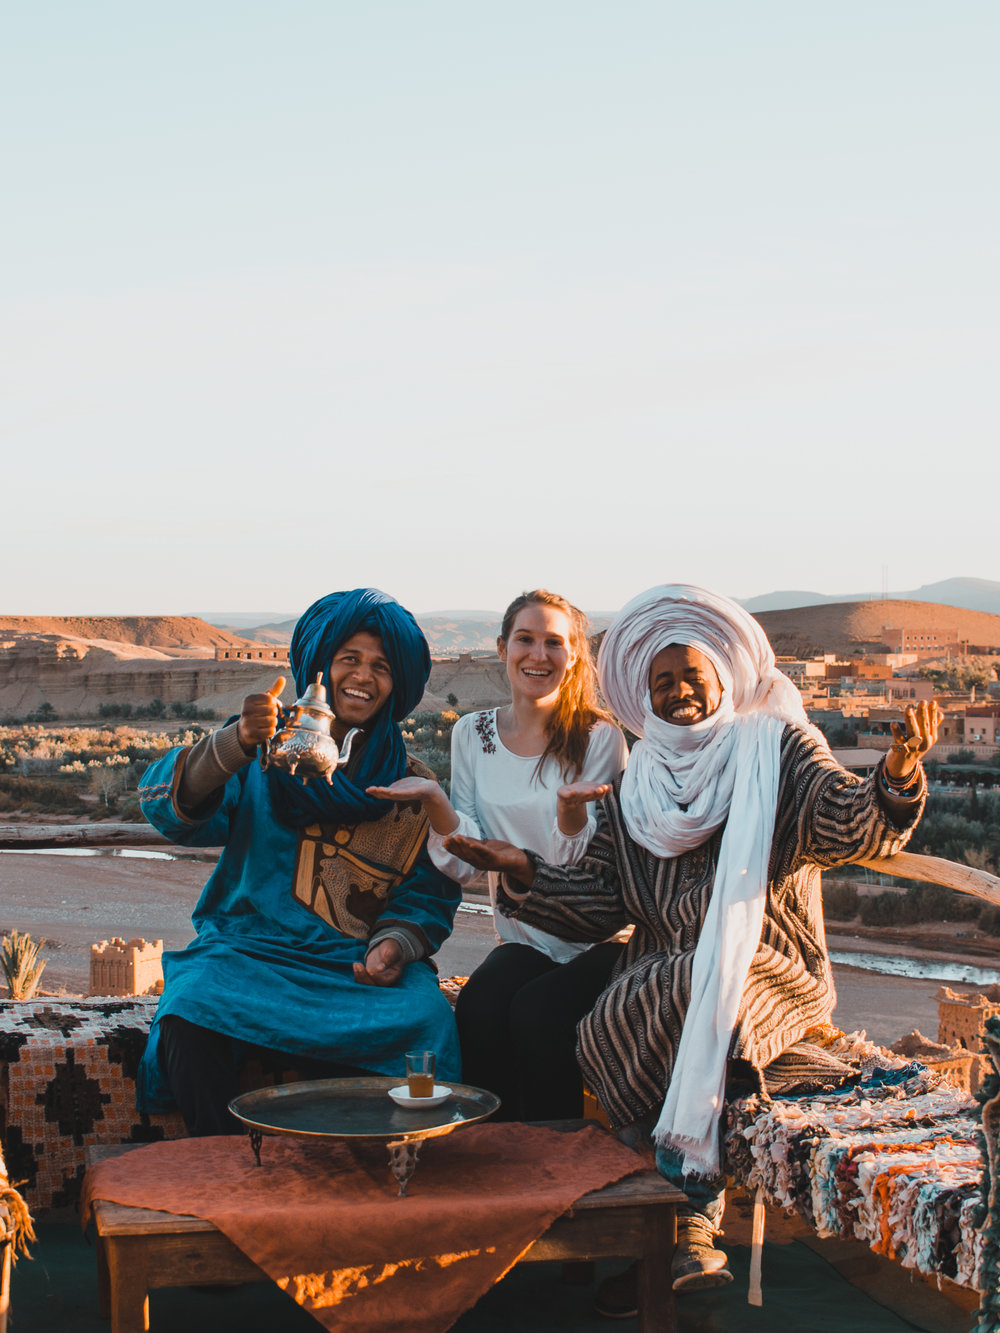 Drinking mint tea with Moroccan locals at Ait Benhaddou